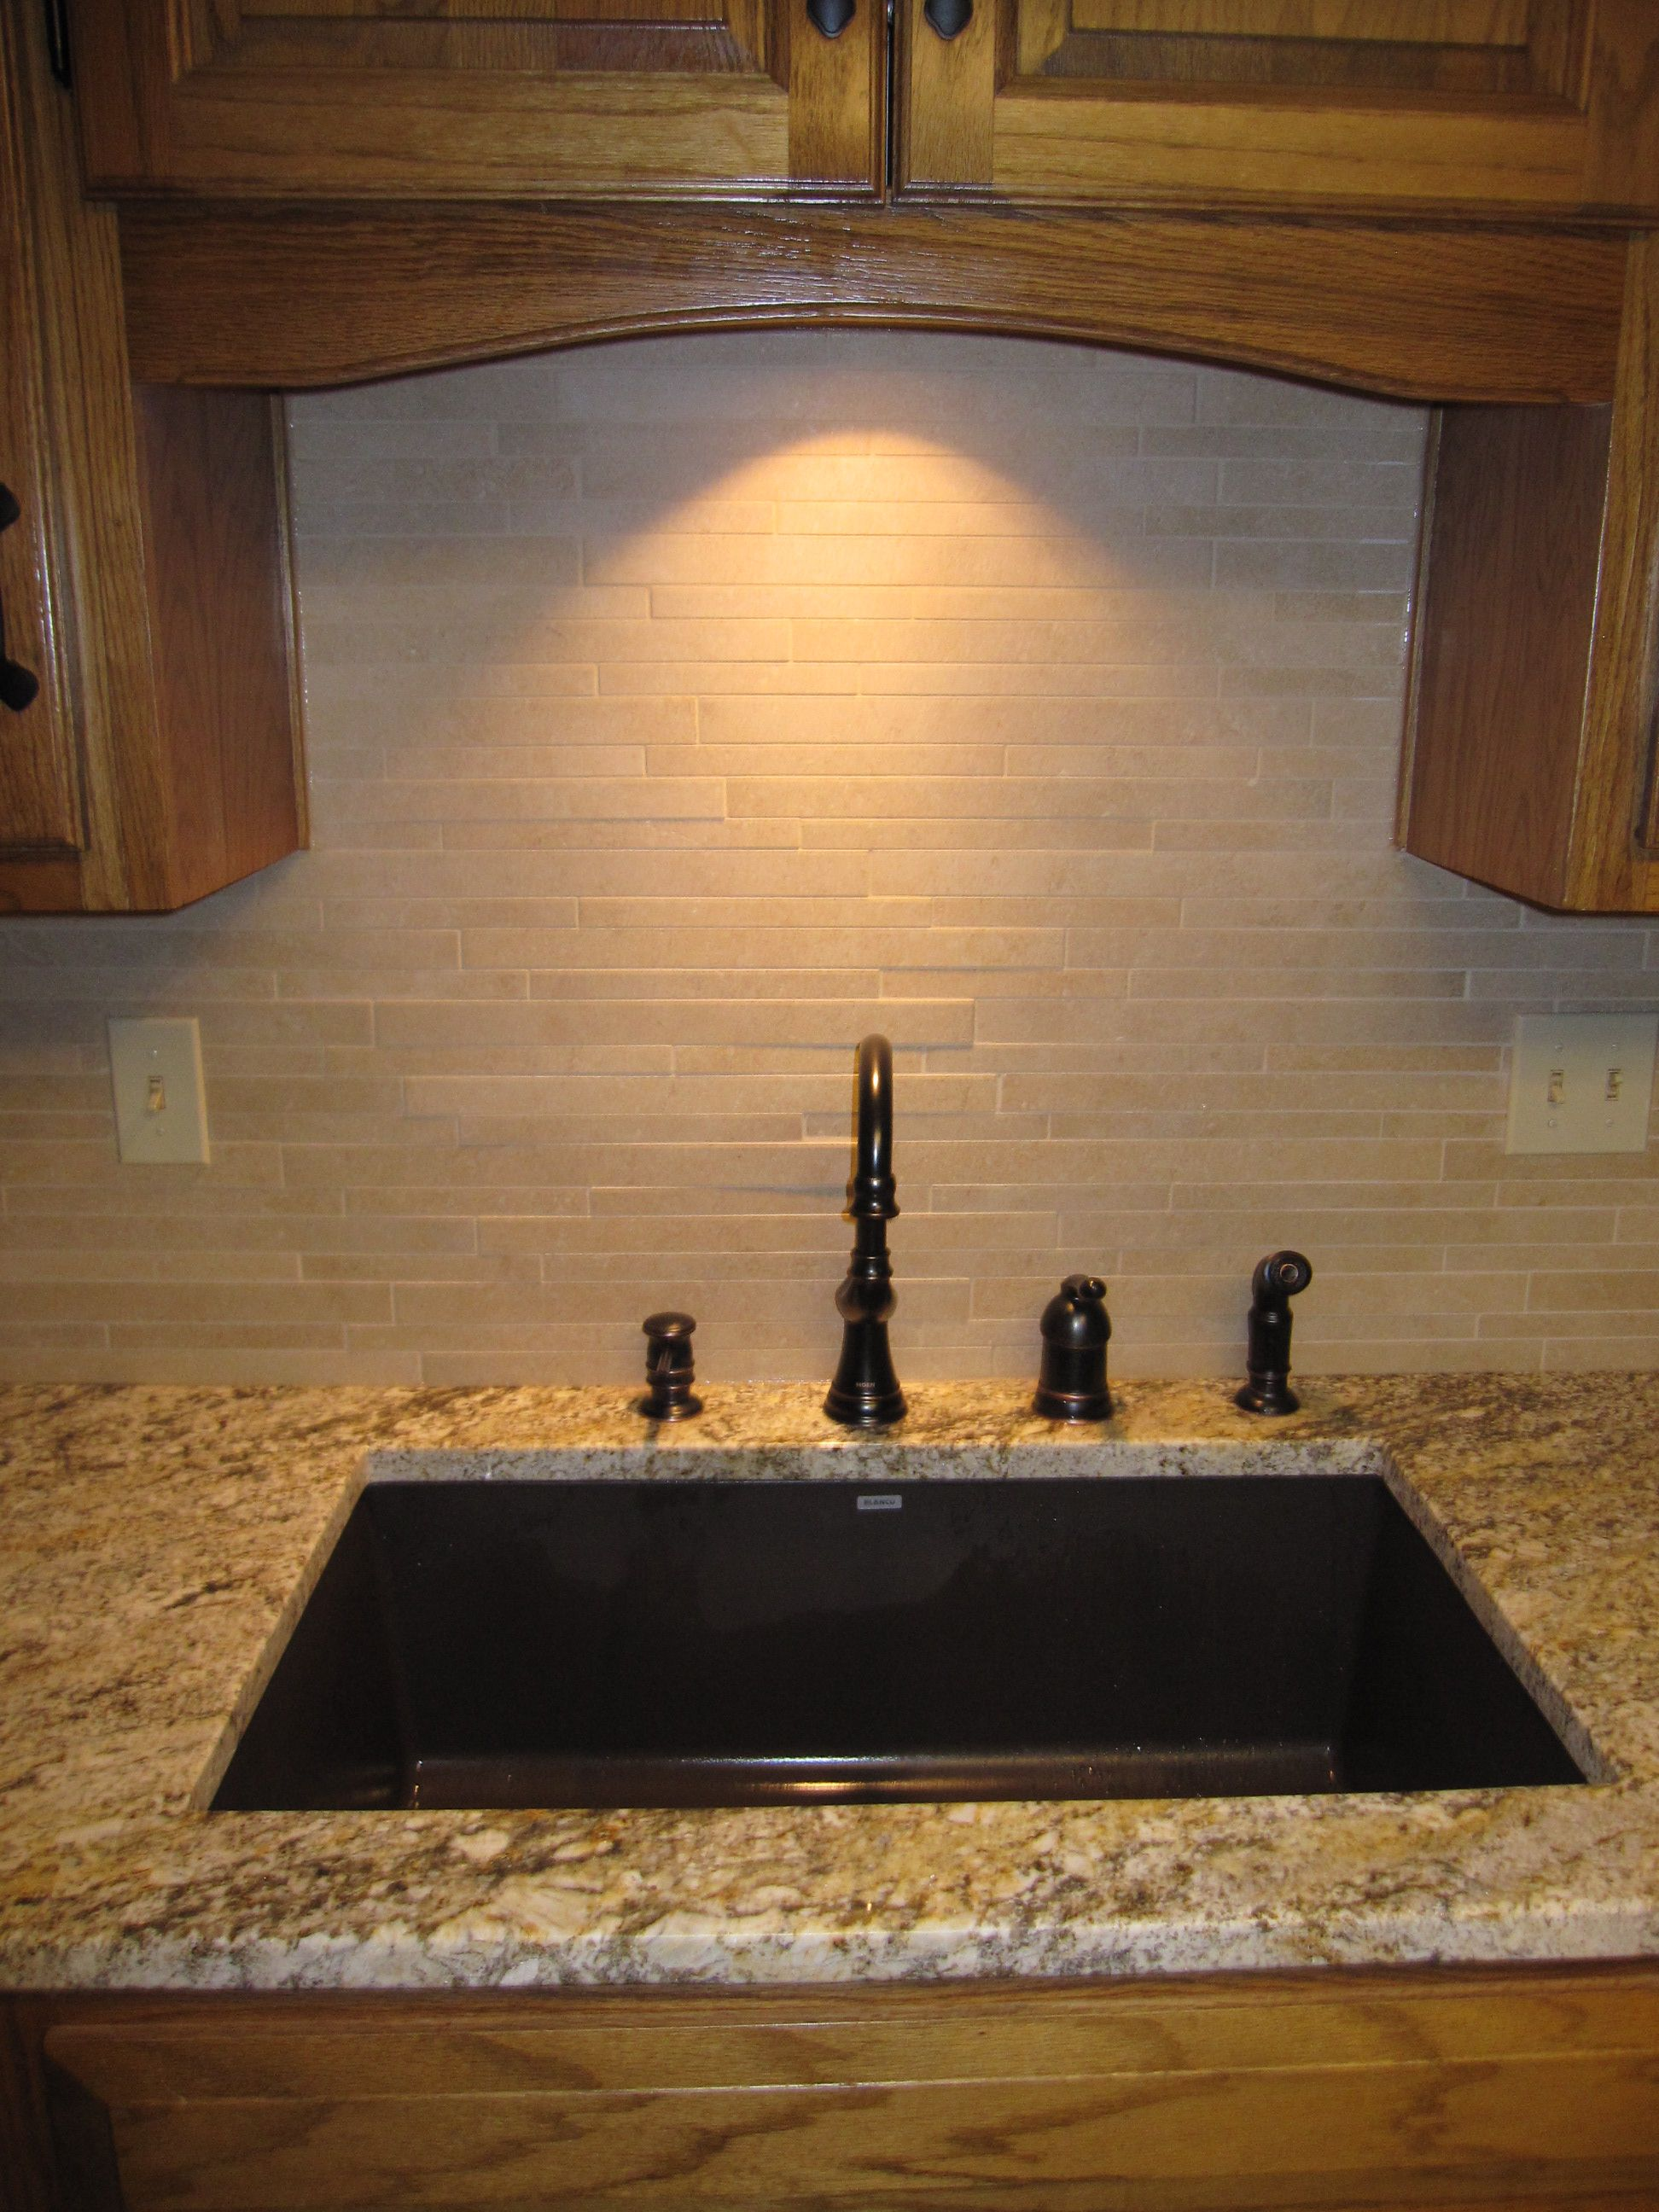 Granite Composite Sink In Kitchen, Granite Top, Travertine Backsplash And  Moen 4 Piece Faucet